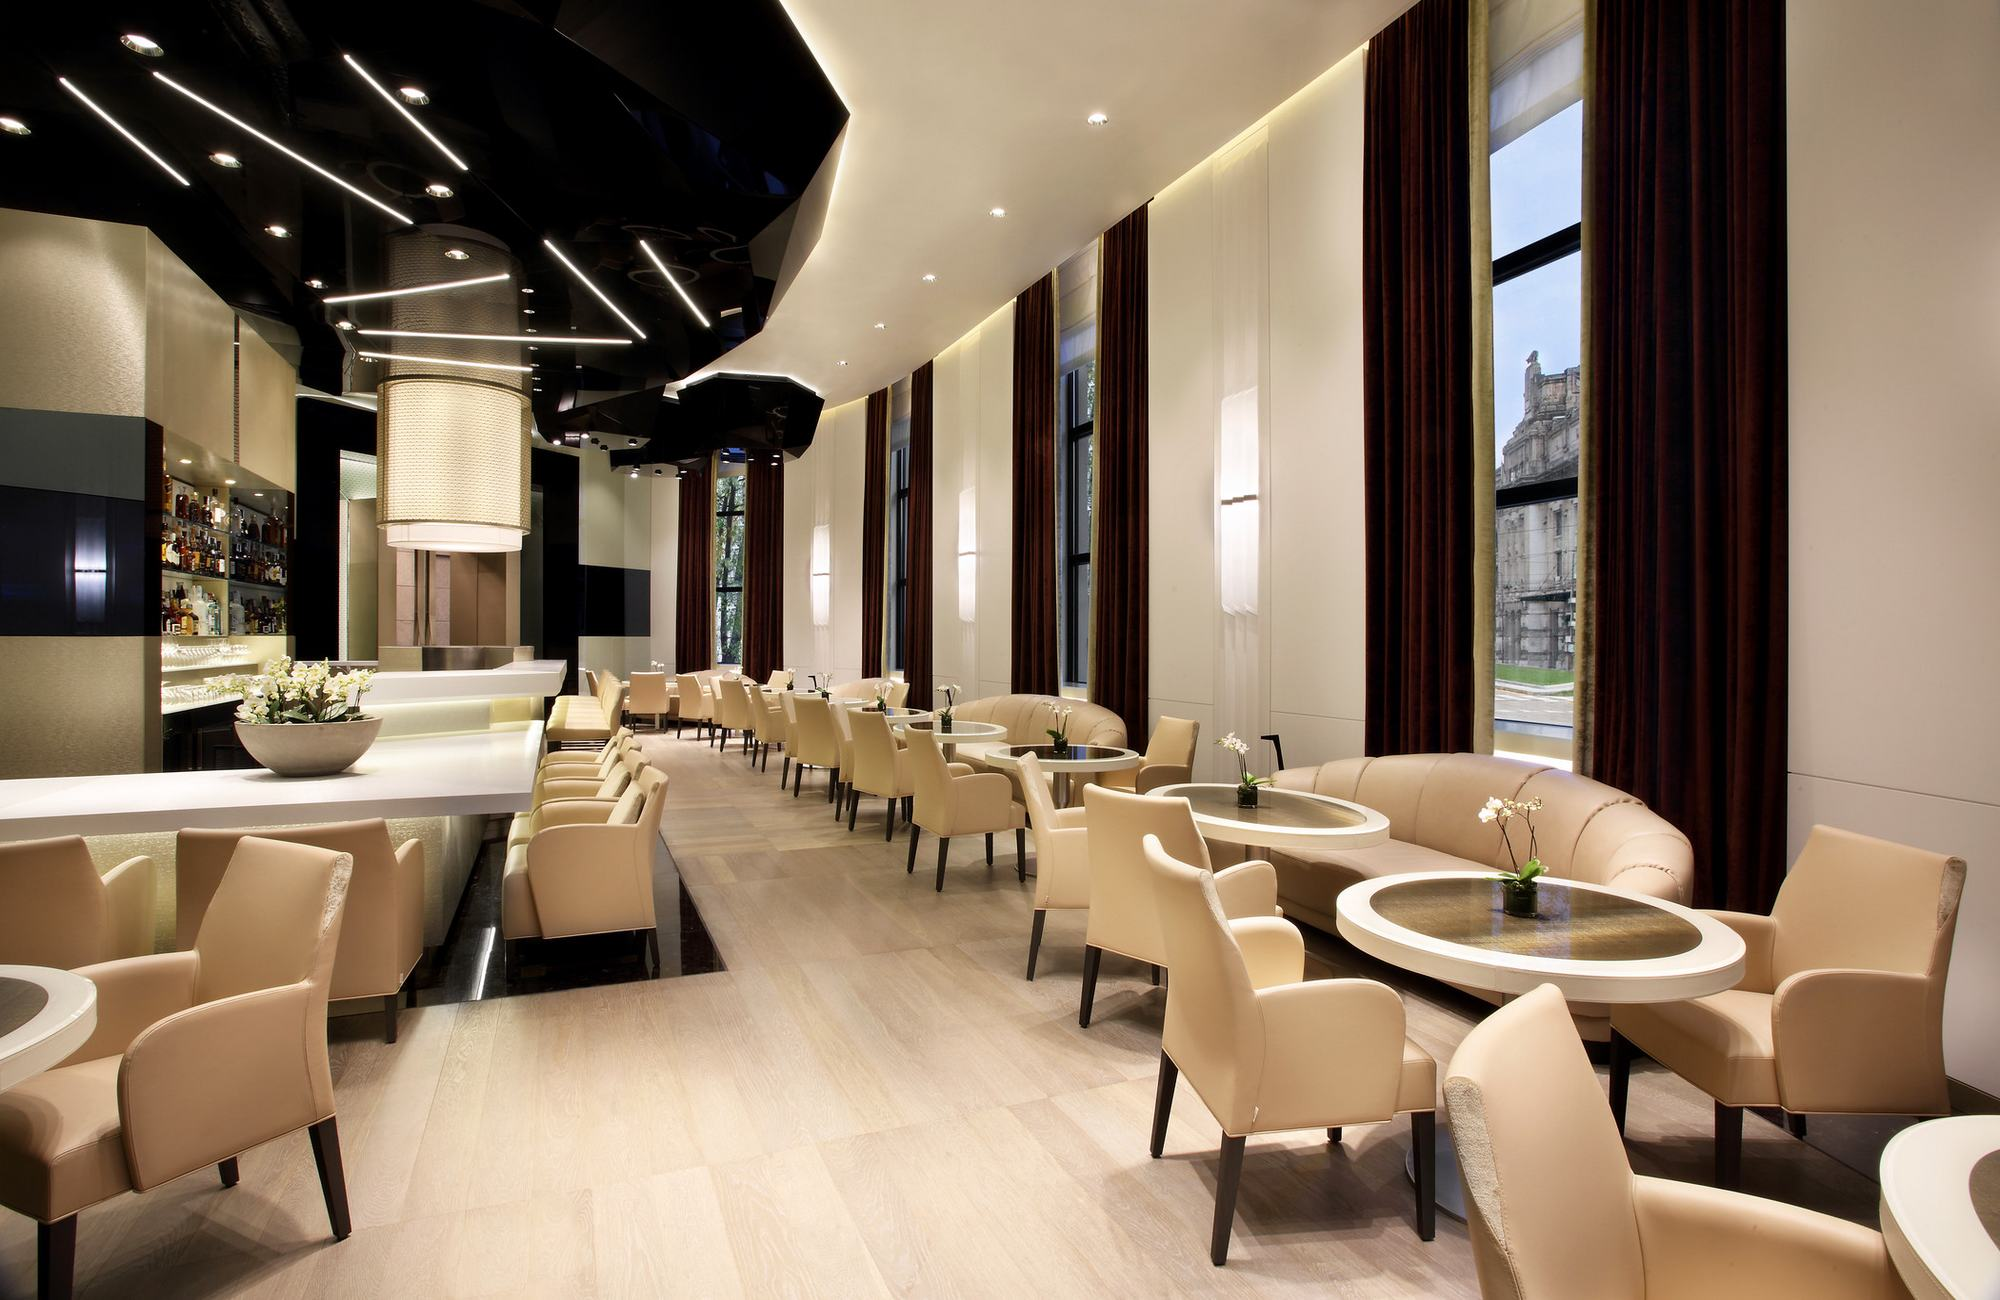 Gallia Lounge  Bar Excelsior Hotel Gallia a Luxury